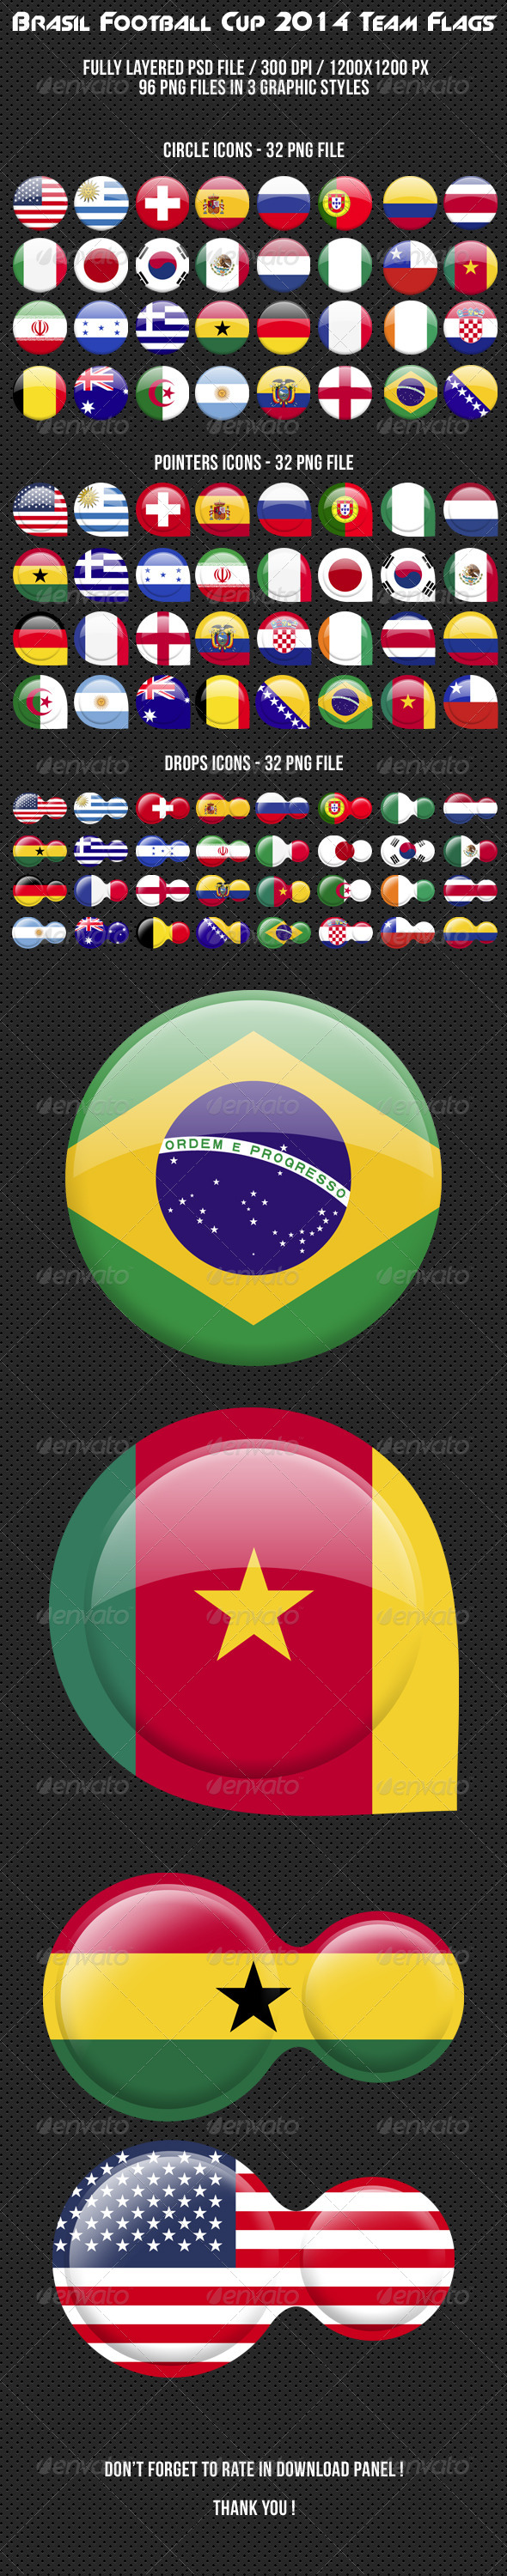 GraphicRiver Brasil Football Cup 2014 Team Flags 7800859